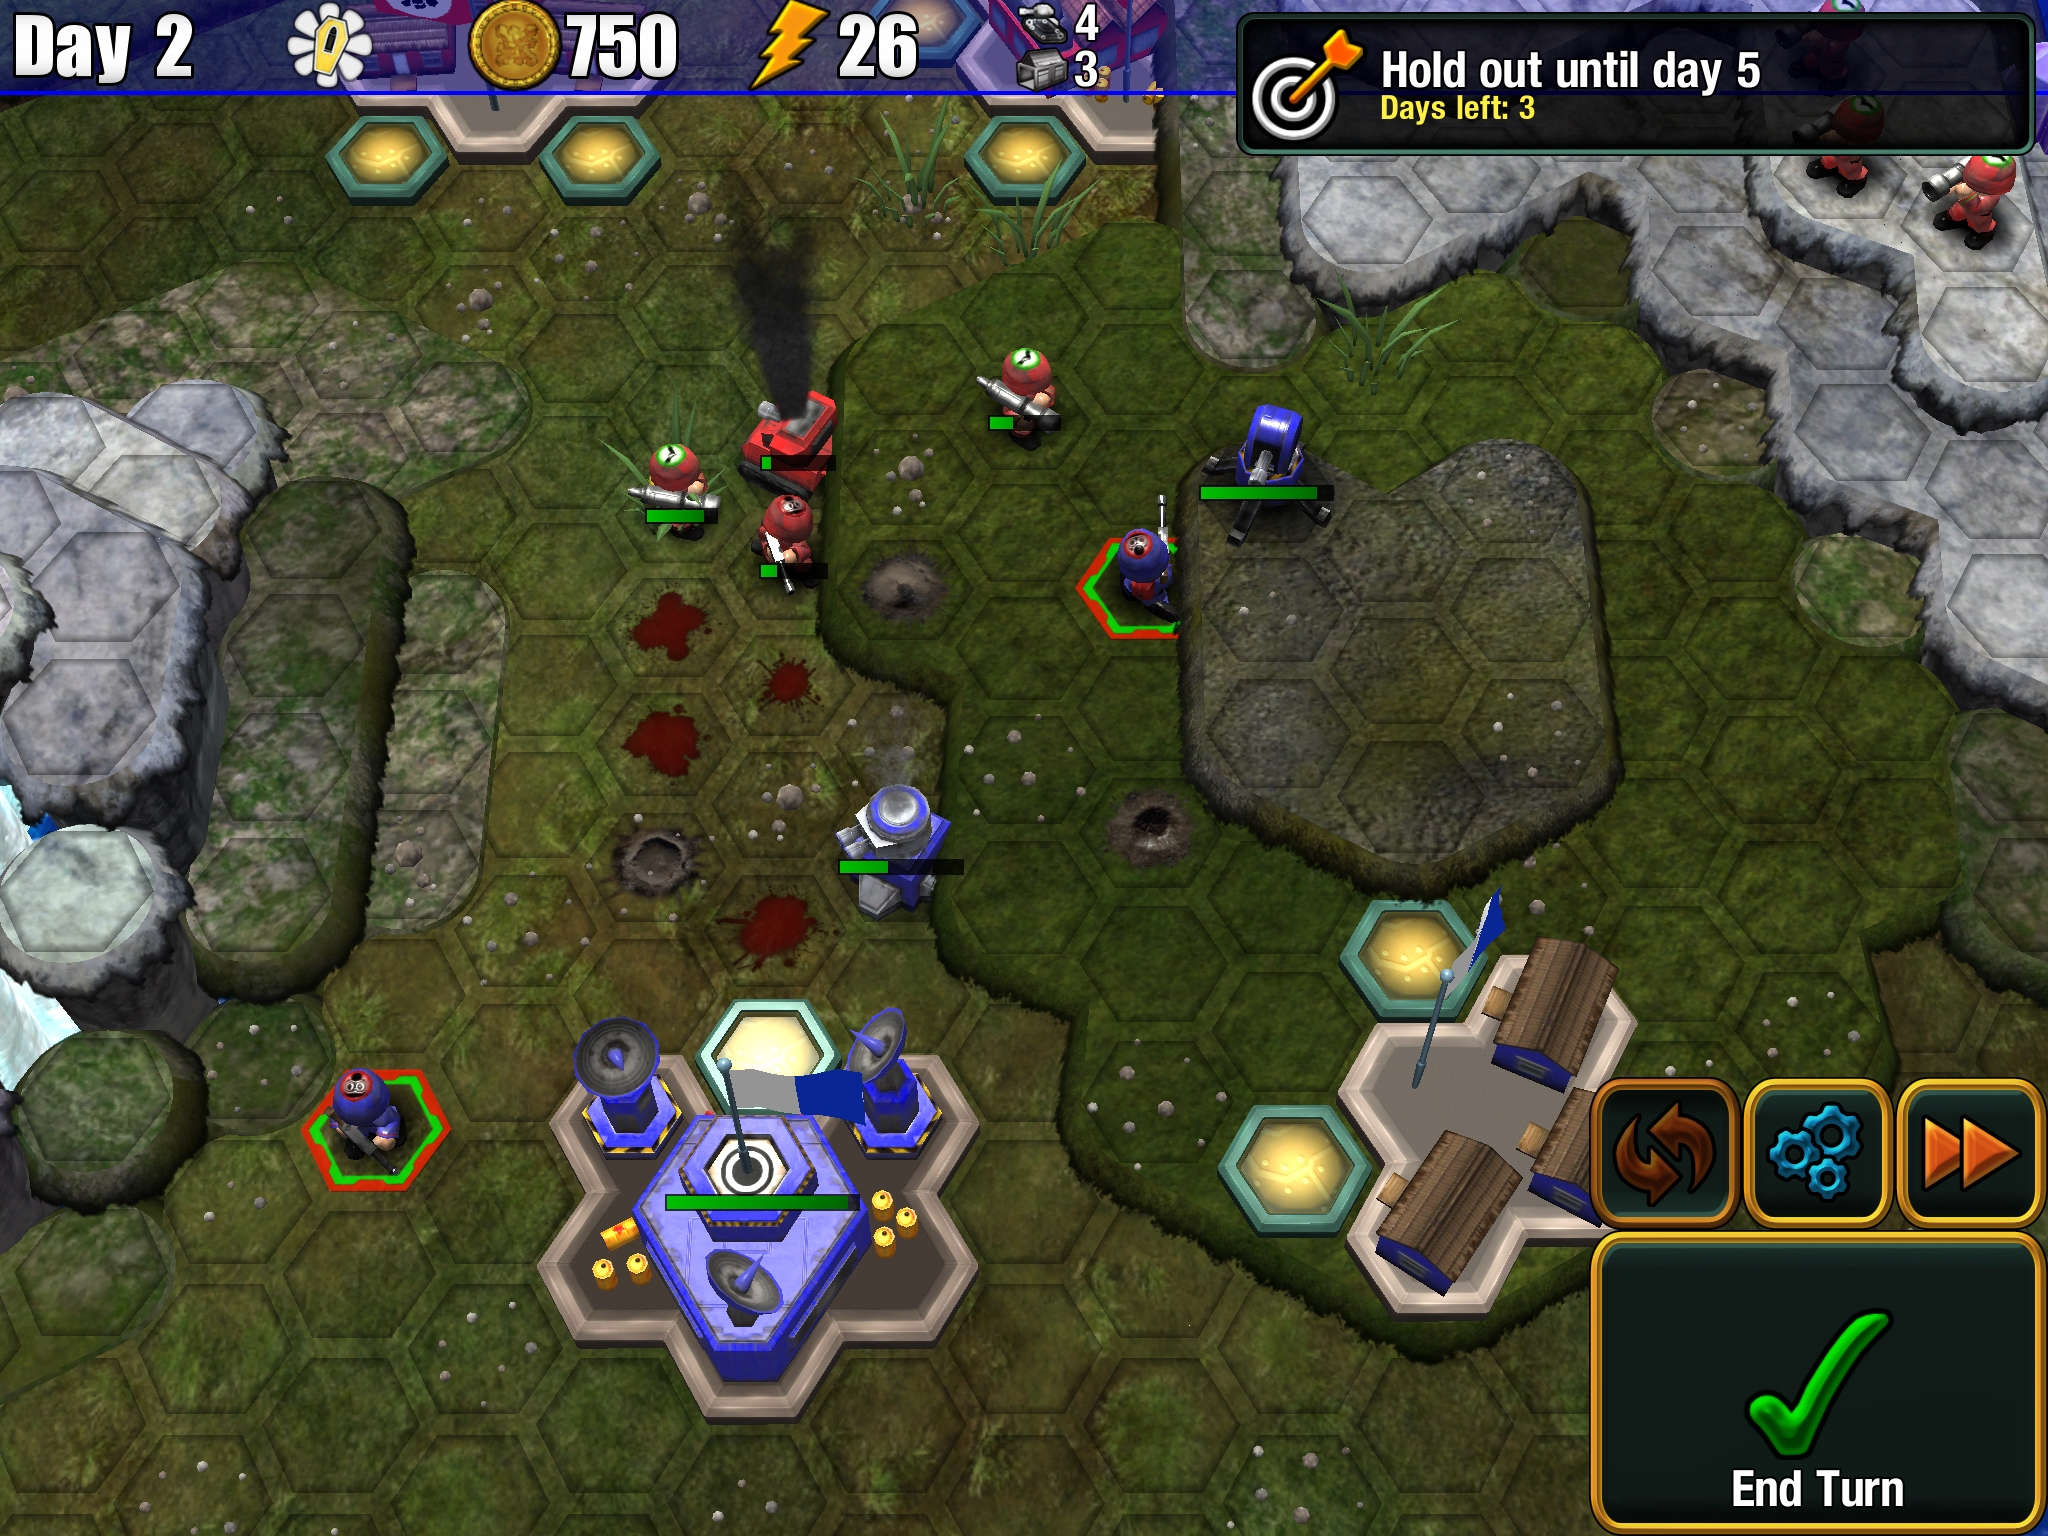 Epic Little War Game review - A turn-based strategy that